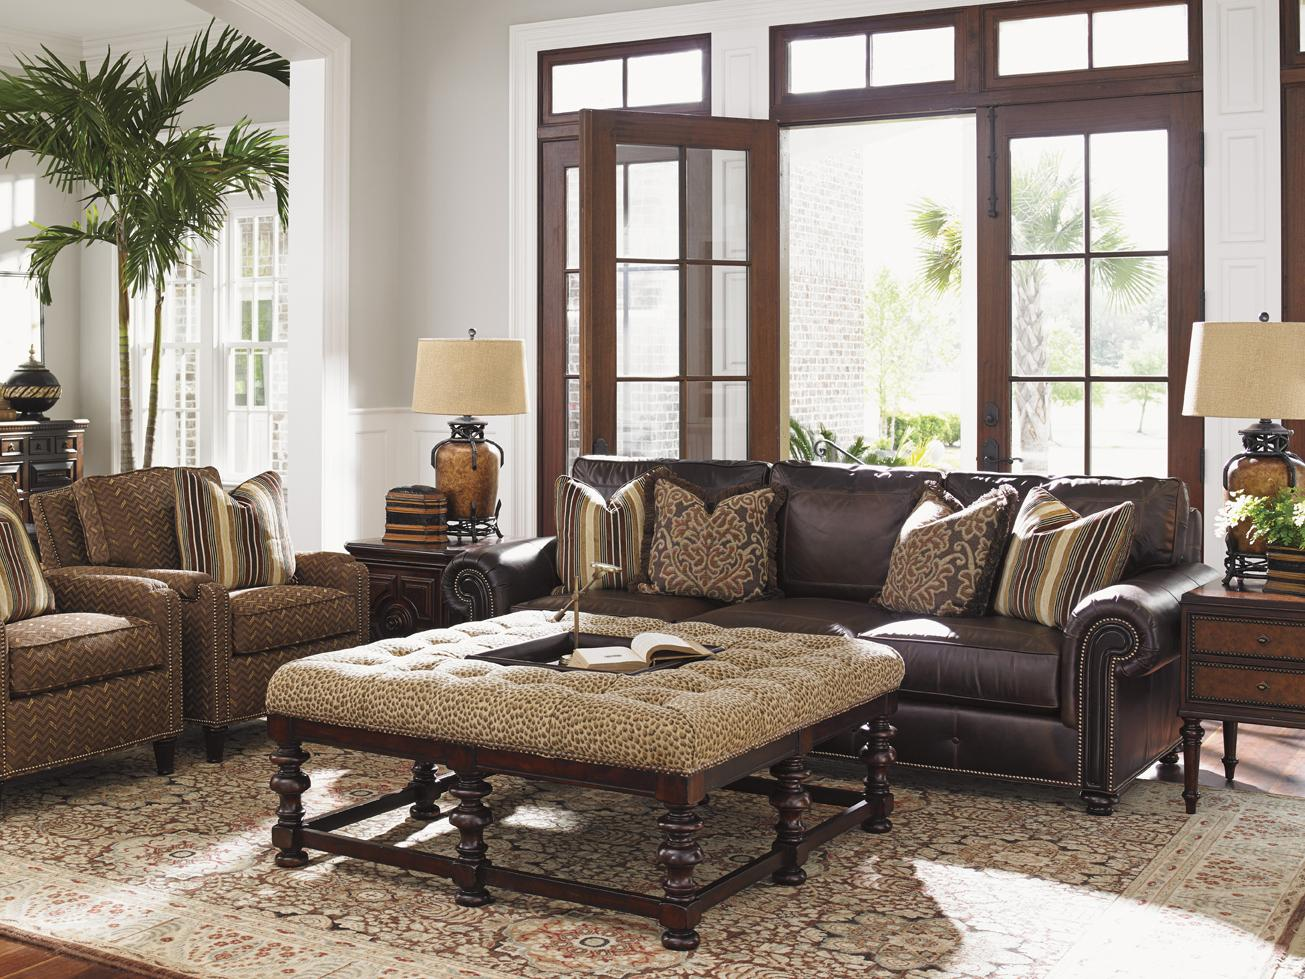 Baer S Custom Furniture The Best Throw Pillows For A